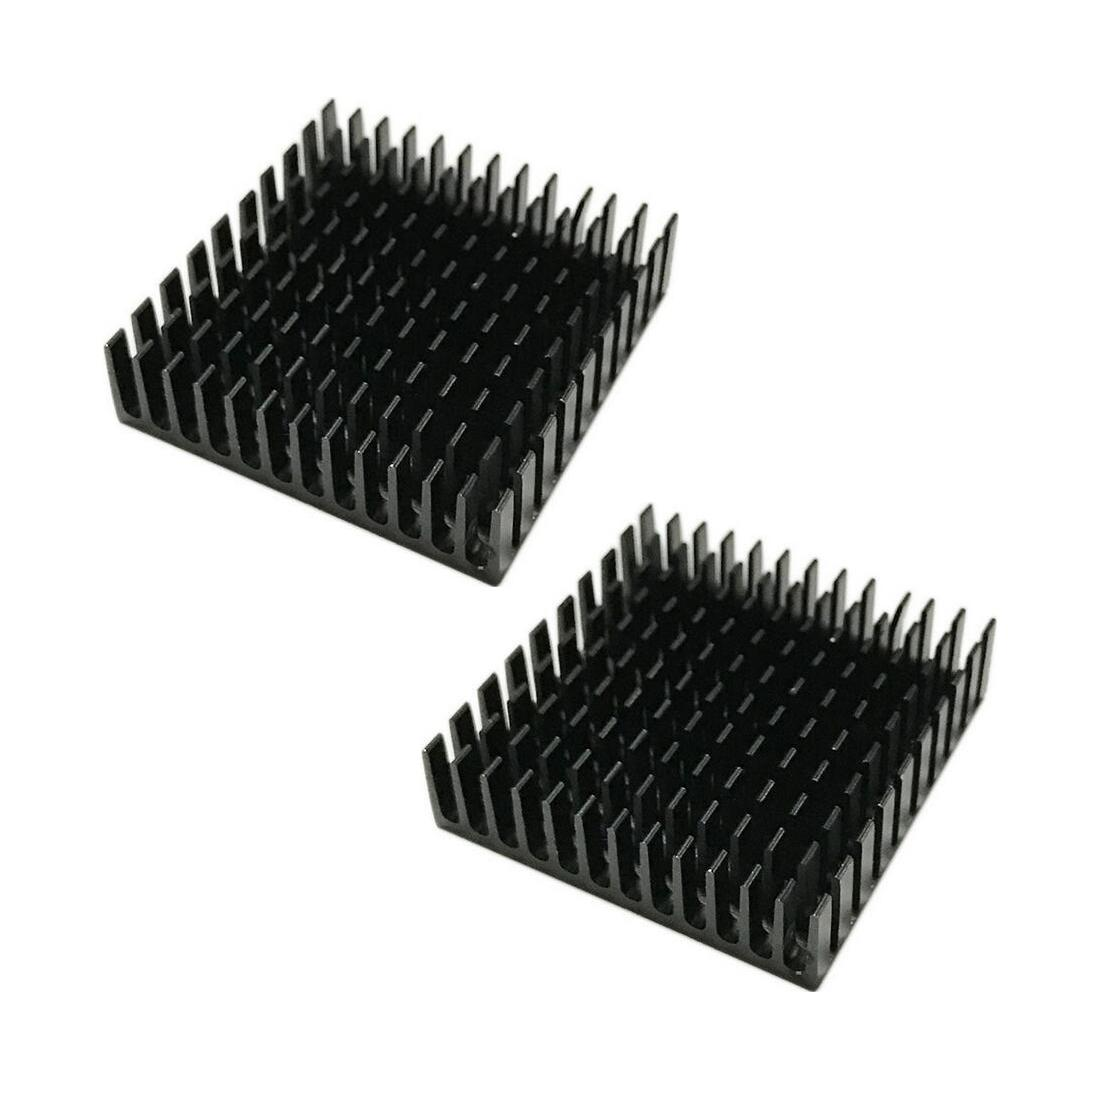 NOYOKERE PRO 40mm*40mm*11mm DIY Cooler Aluminum Heatsink Cooling Fin Heat Sink for LED Power Memory Chip IC Black Color